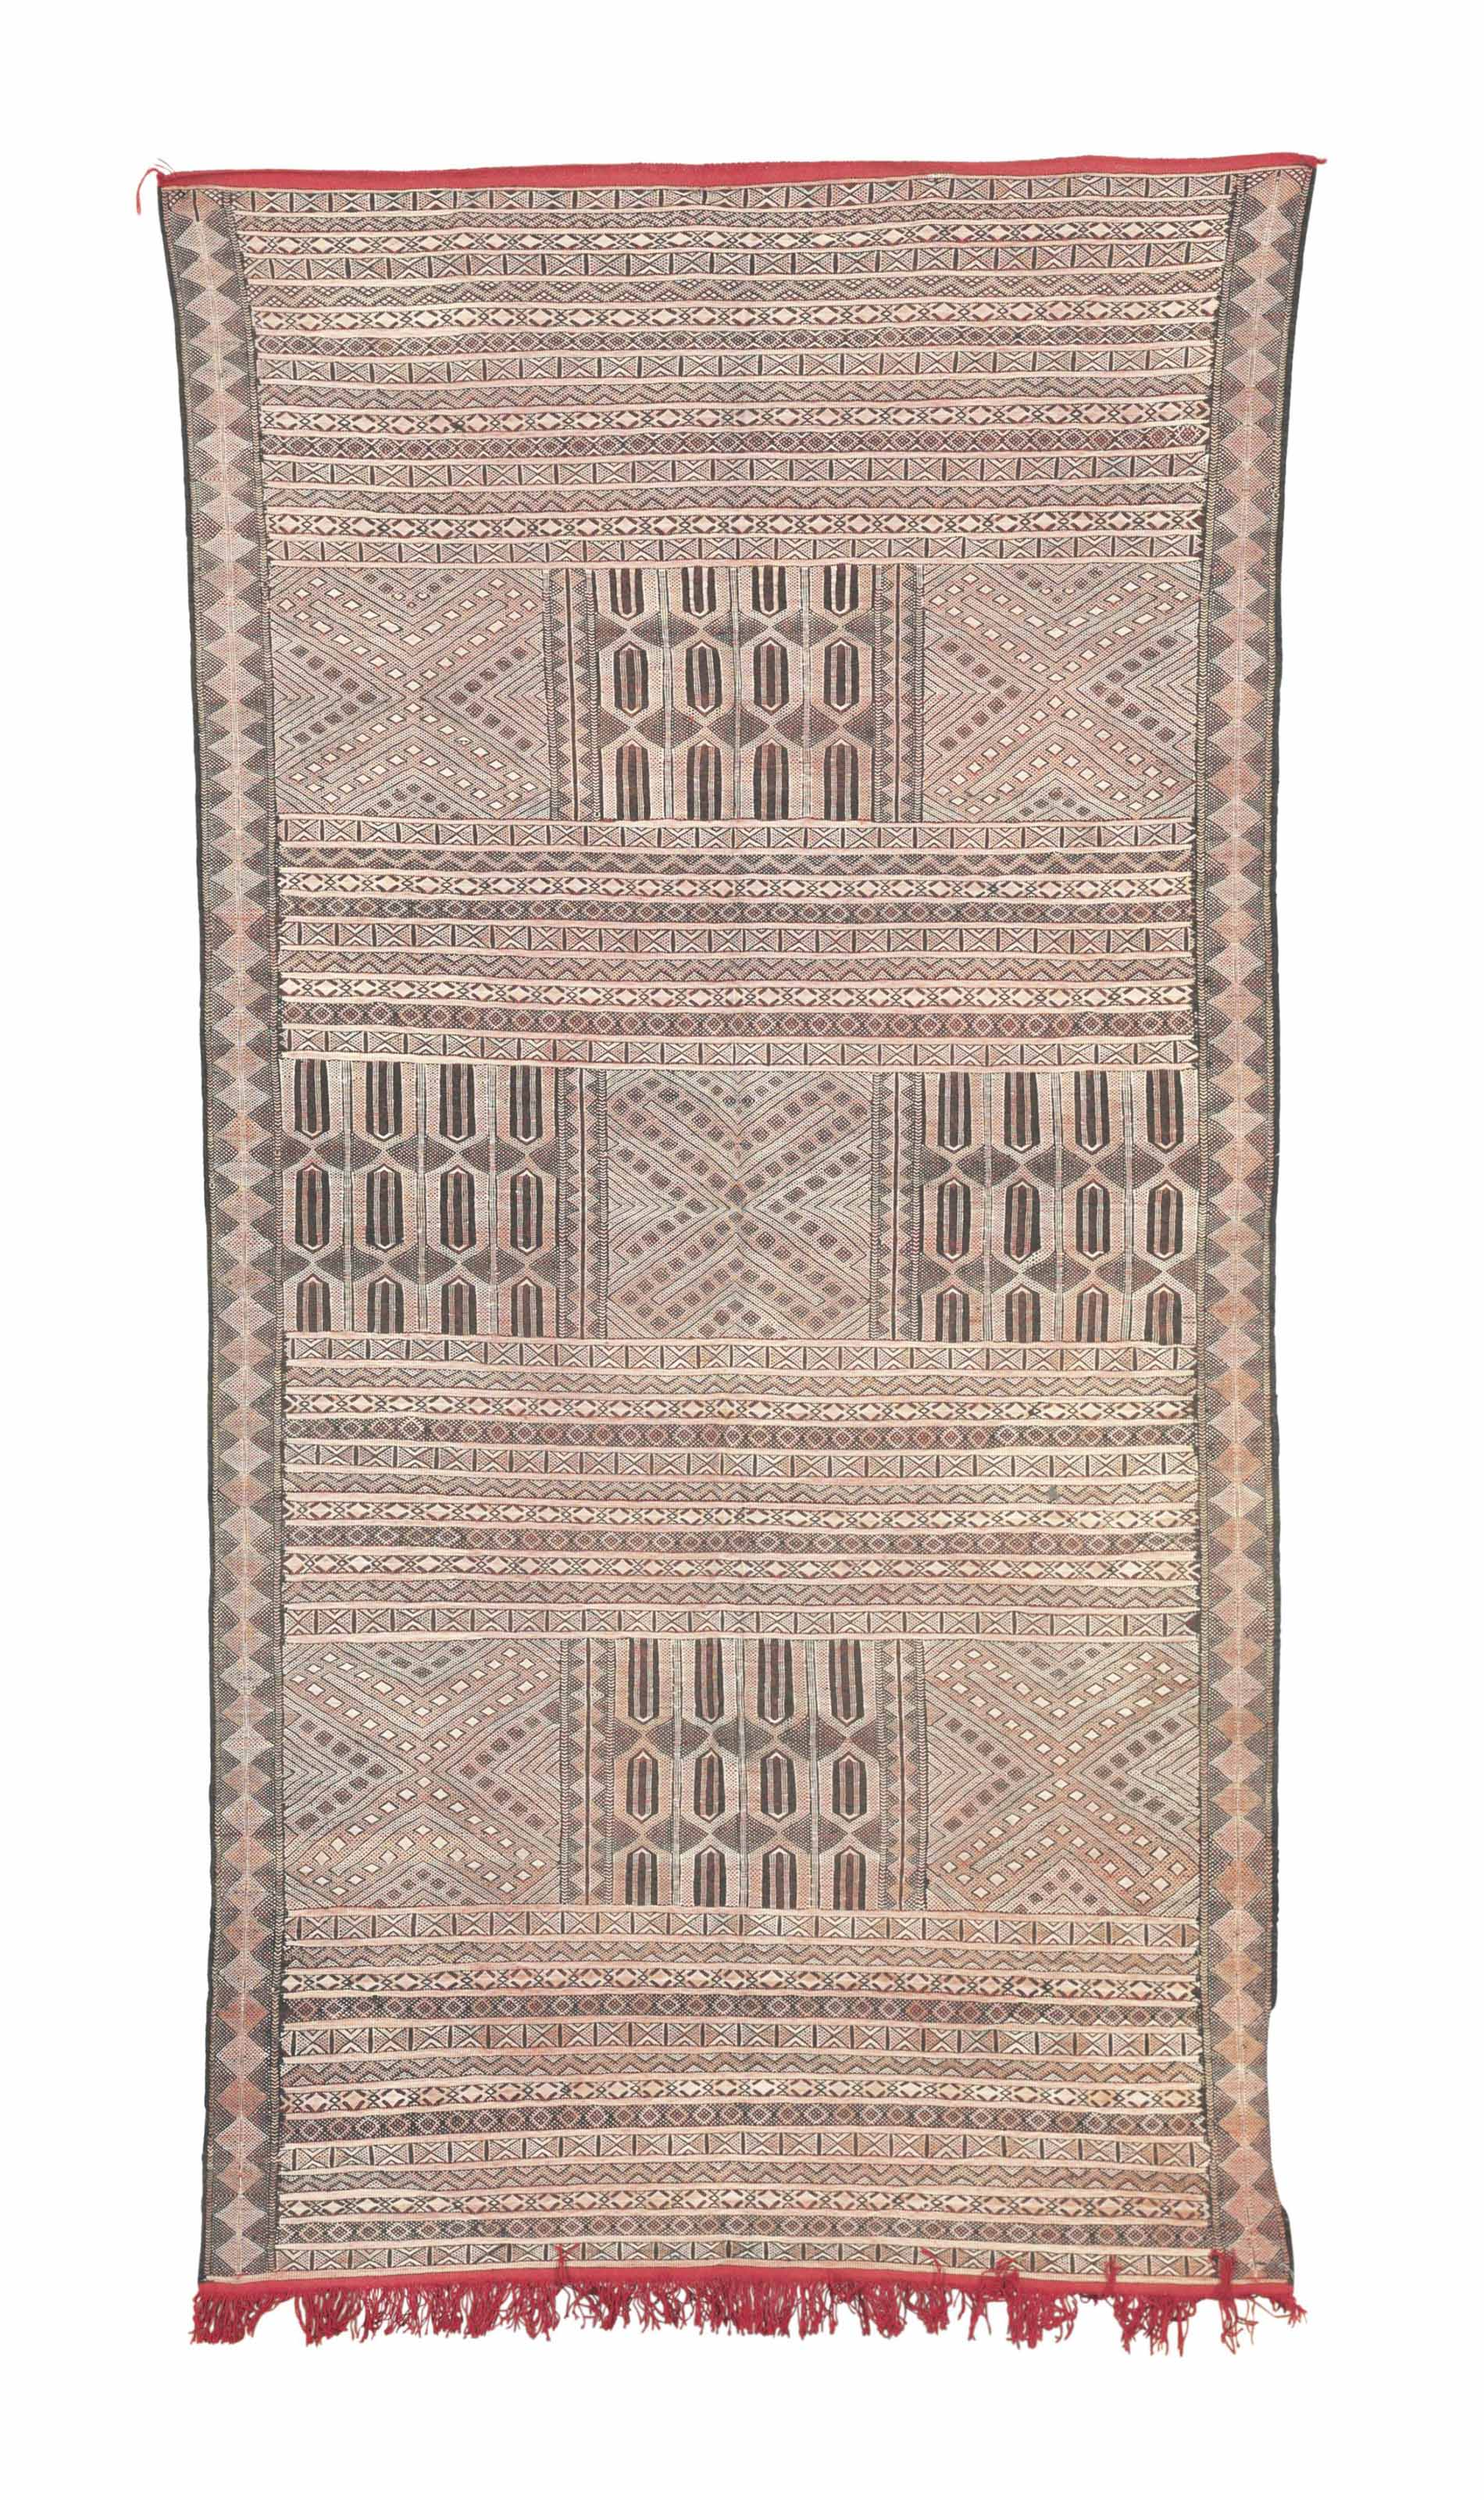 TWO MOROCCAN FLATWEAVES,